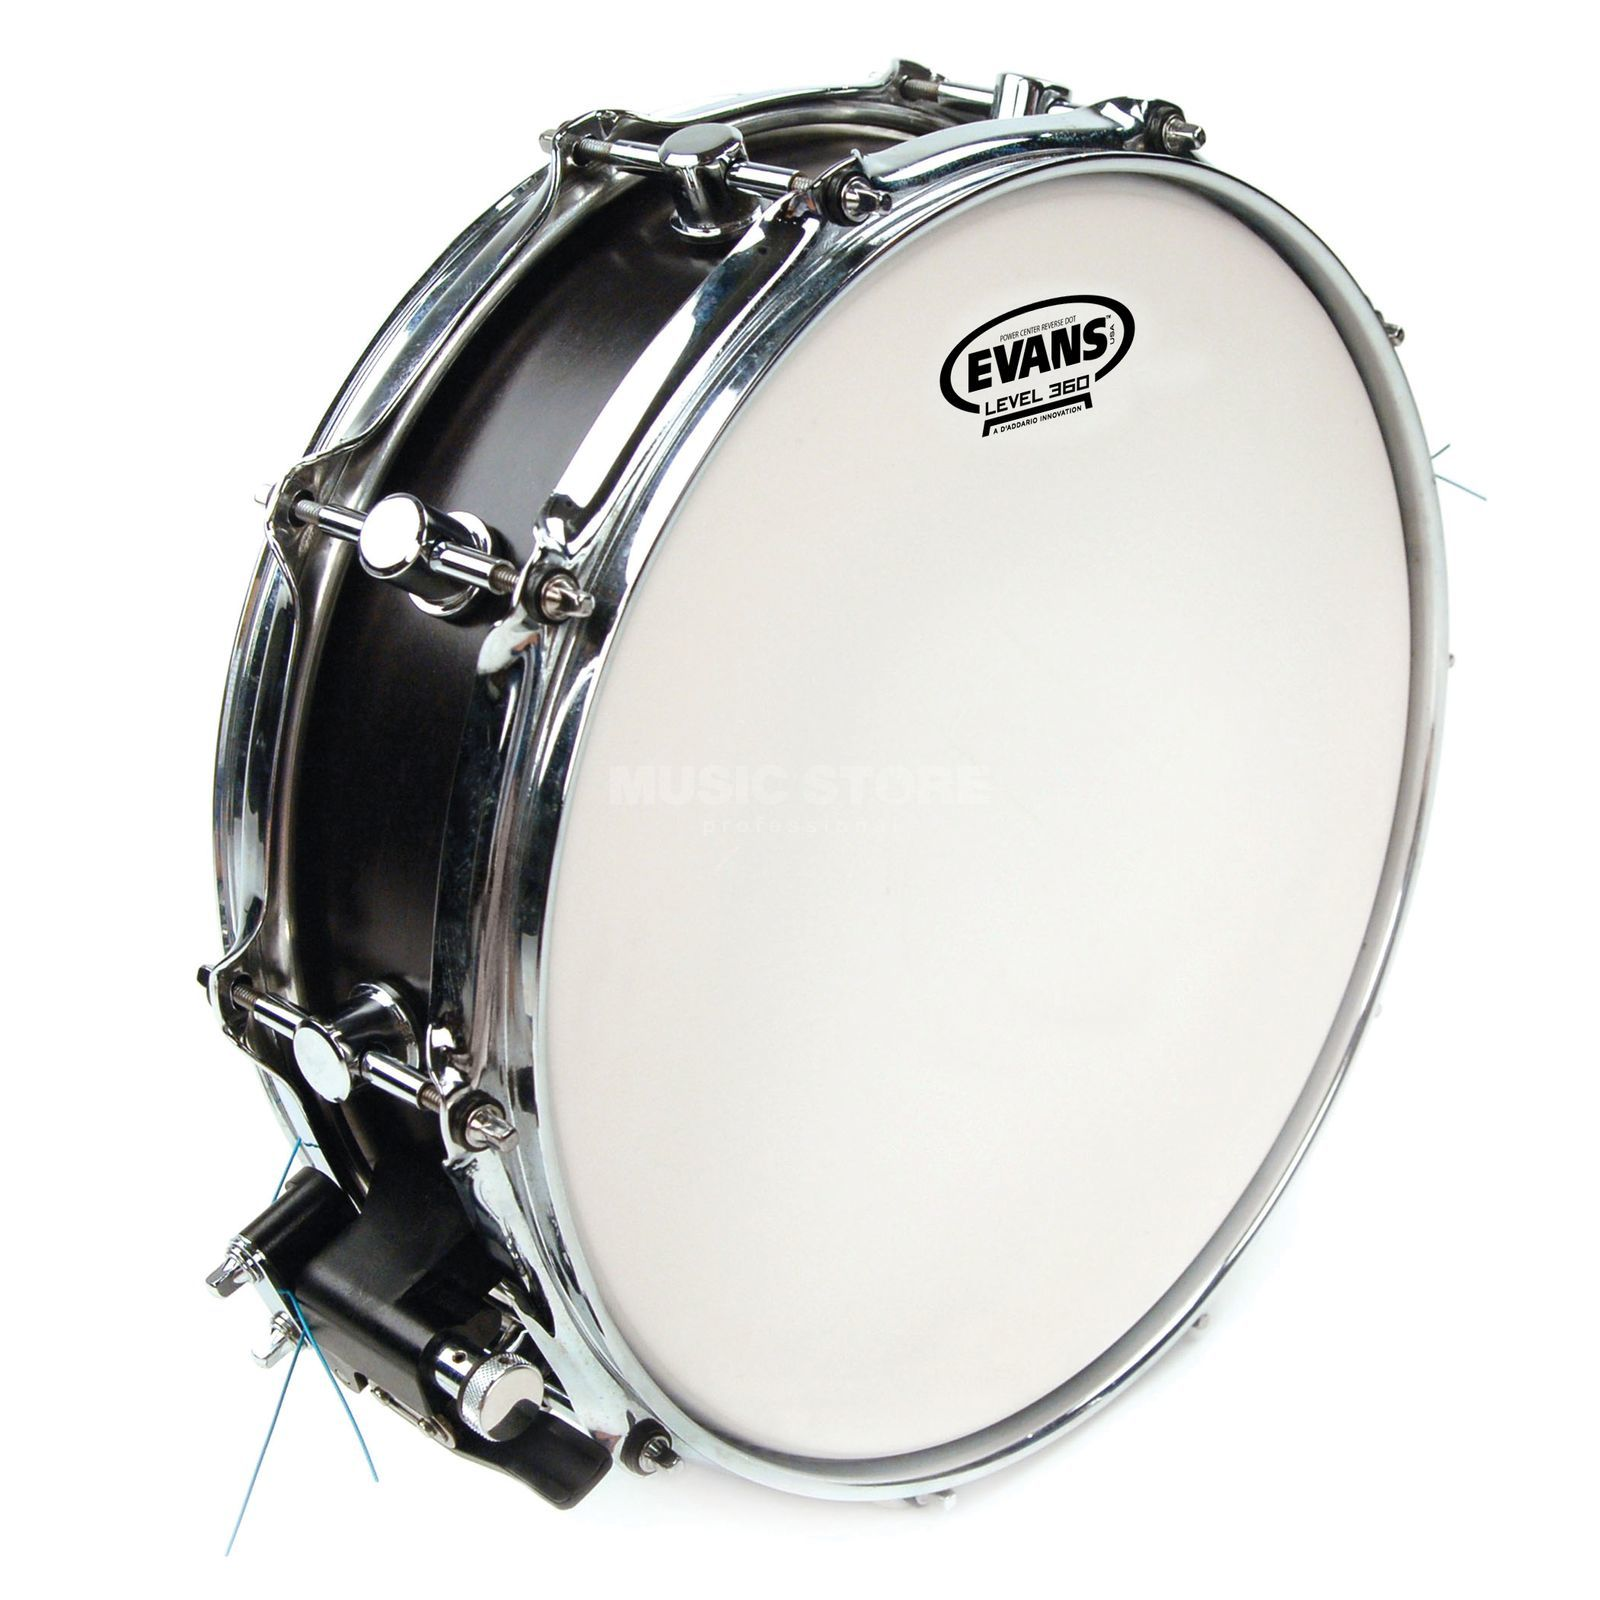 "Evans Power Center 12"", B12G1RD, Reverse Dot, Snare Batter Product Image"